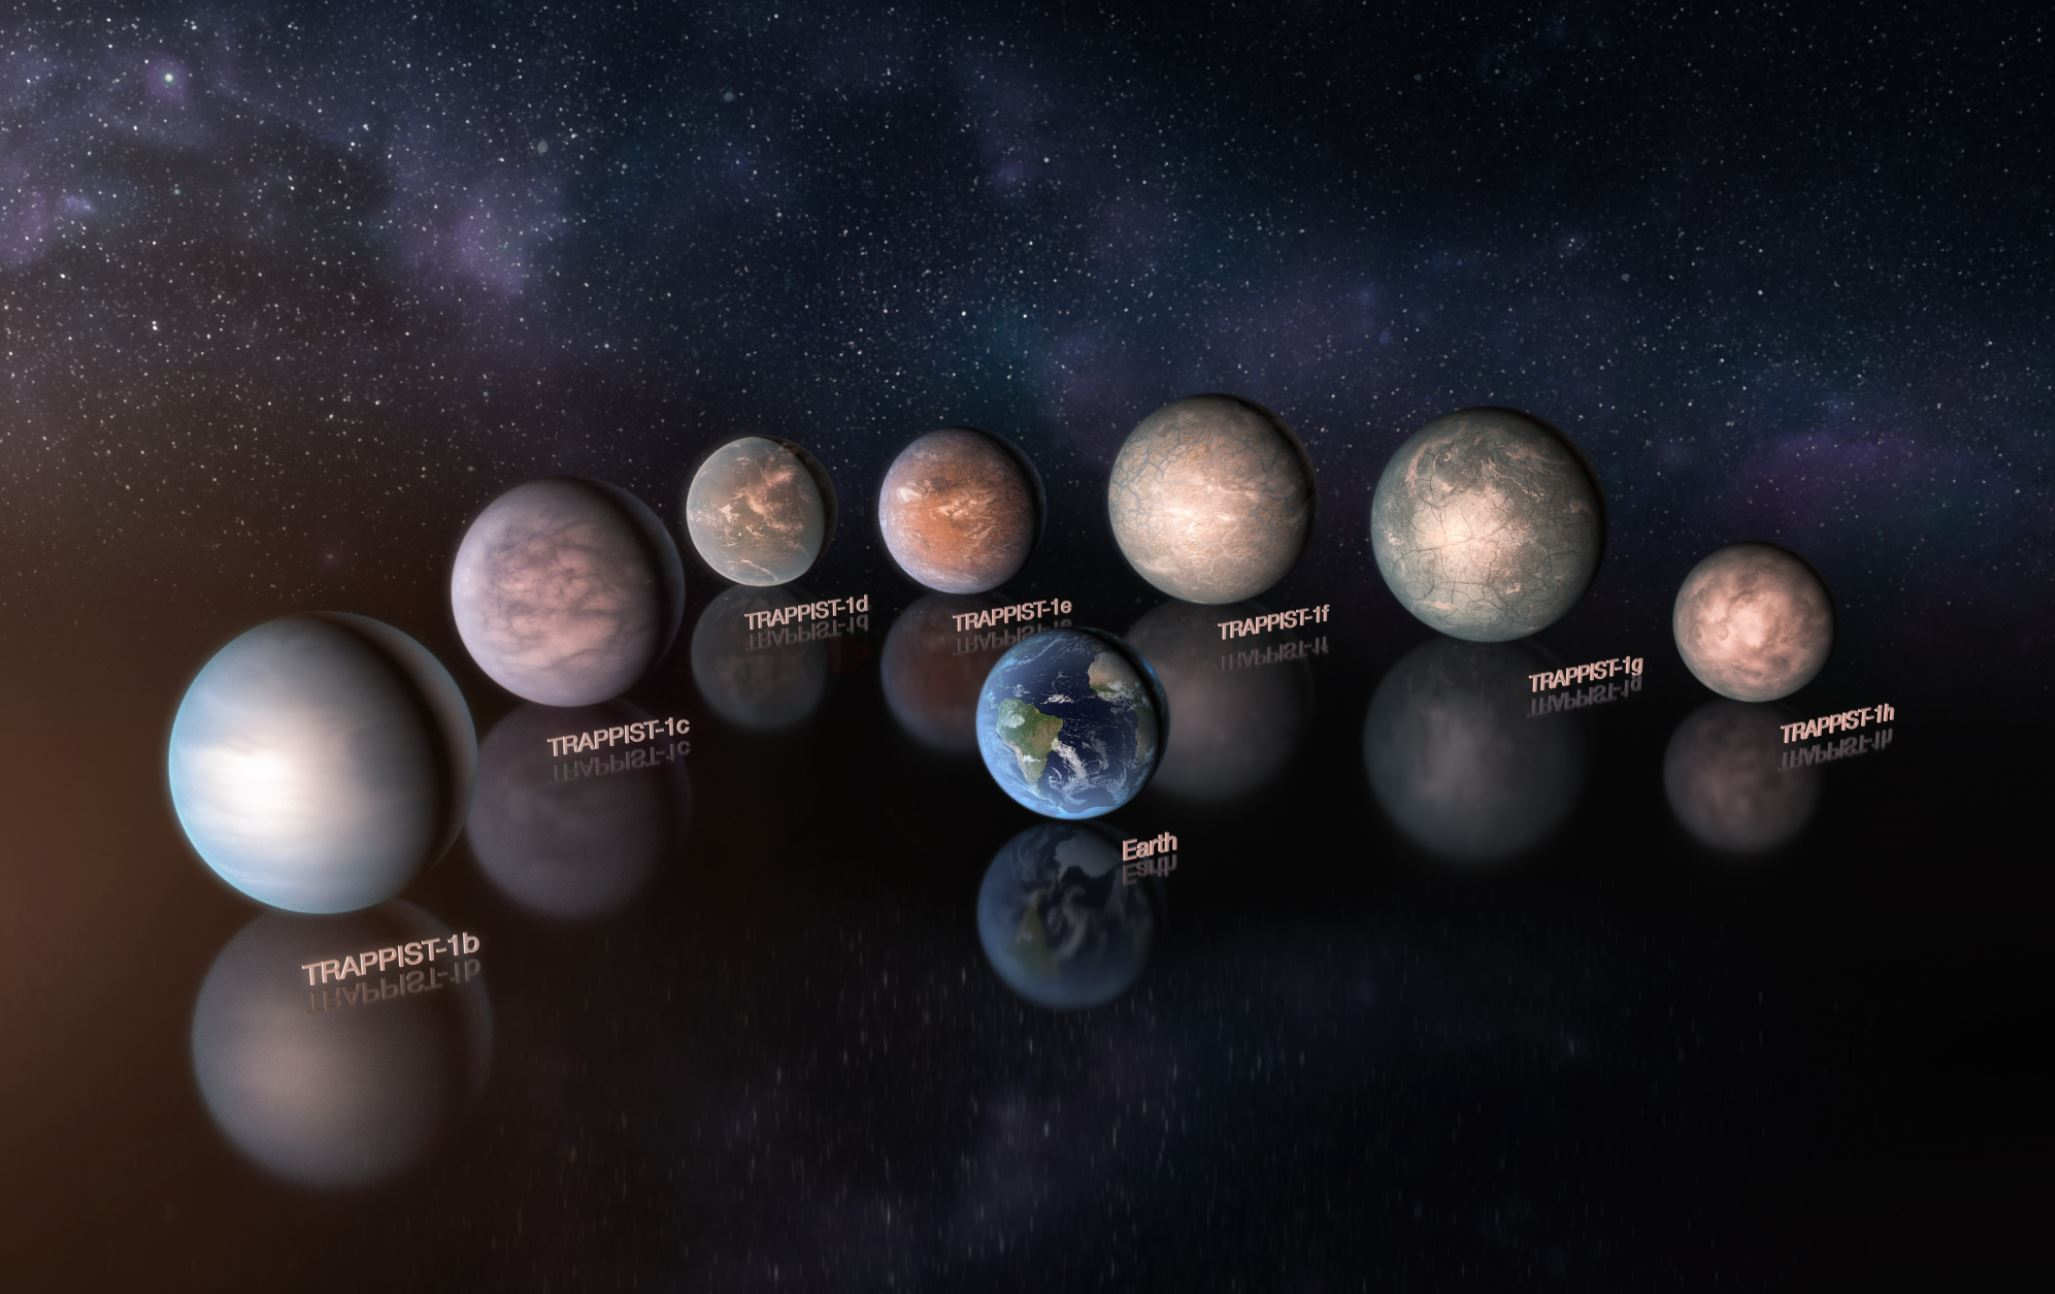 This artist's impression compares the seven planets orbiting the ultra-cool red dwarf star TRAPPIST-1 to the Earth at the same scale. They are shown to the same scale but not in the correct relative positions. - Image Credit: ESO/M. Kornmesser